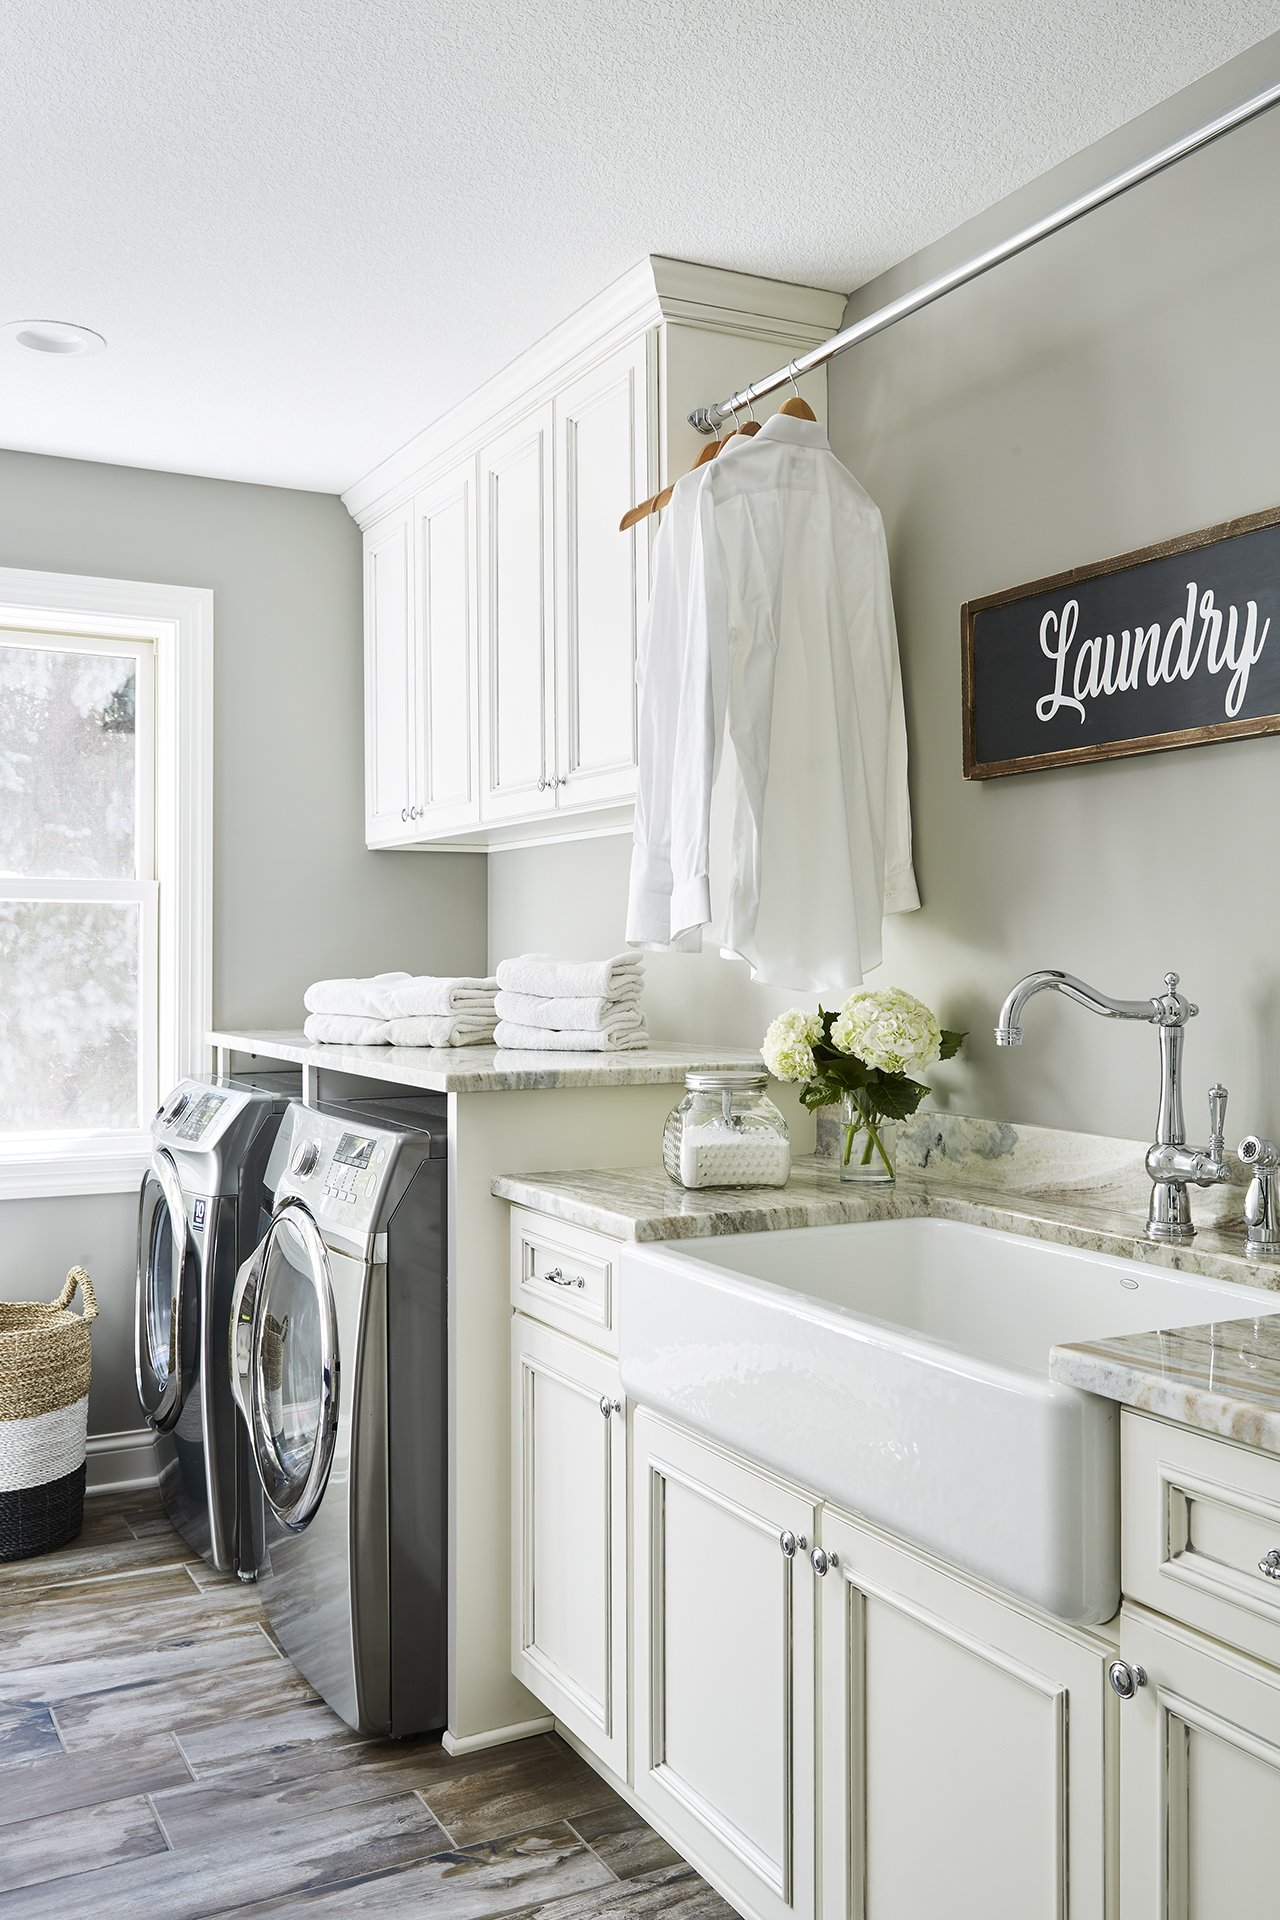 A white farmhouse apron sink gives this laundry room a classic touch, while creamy white cabinets contrast beautifully against wood grain-inspired floor tiles.